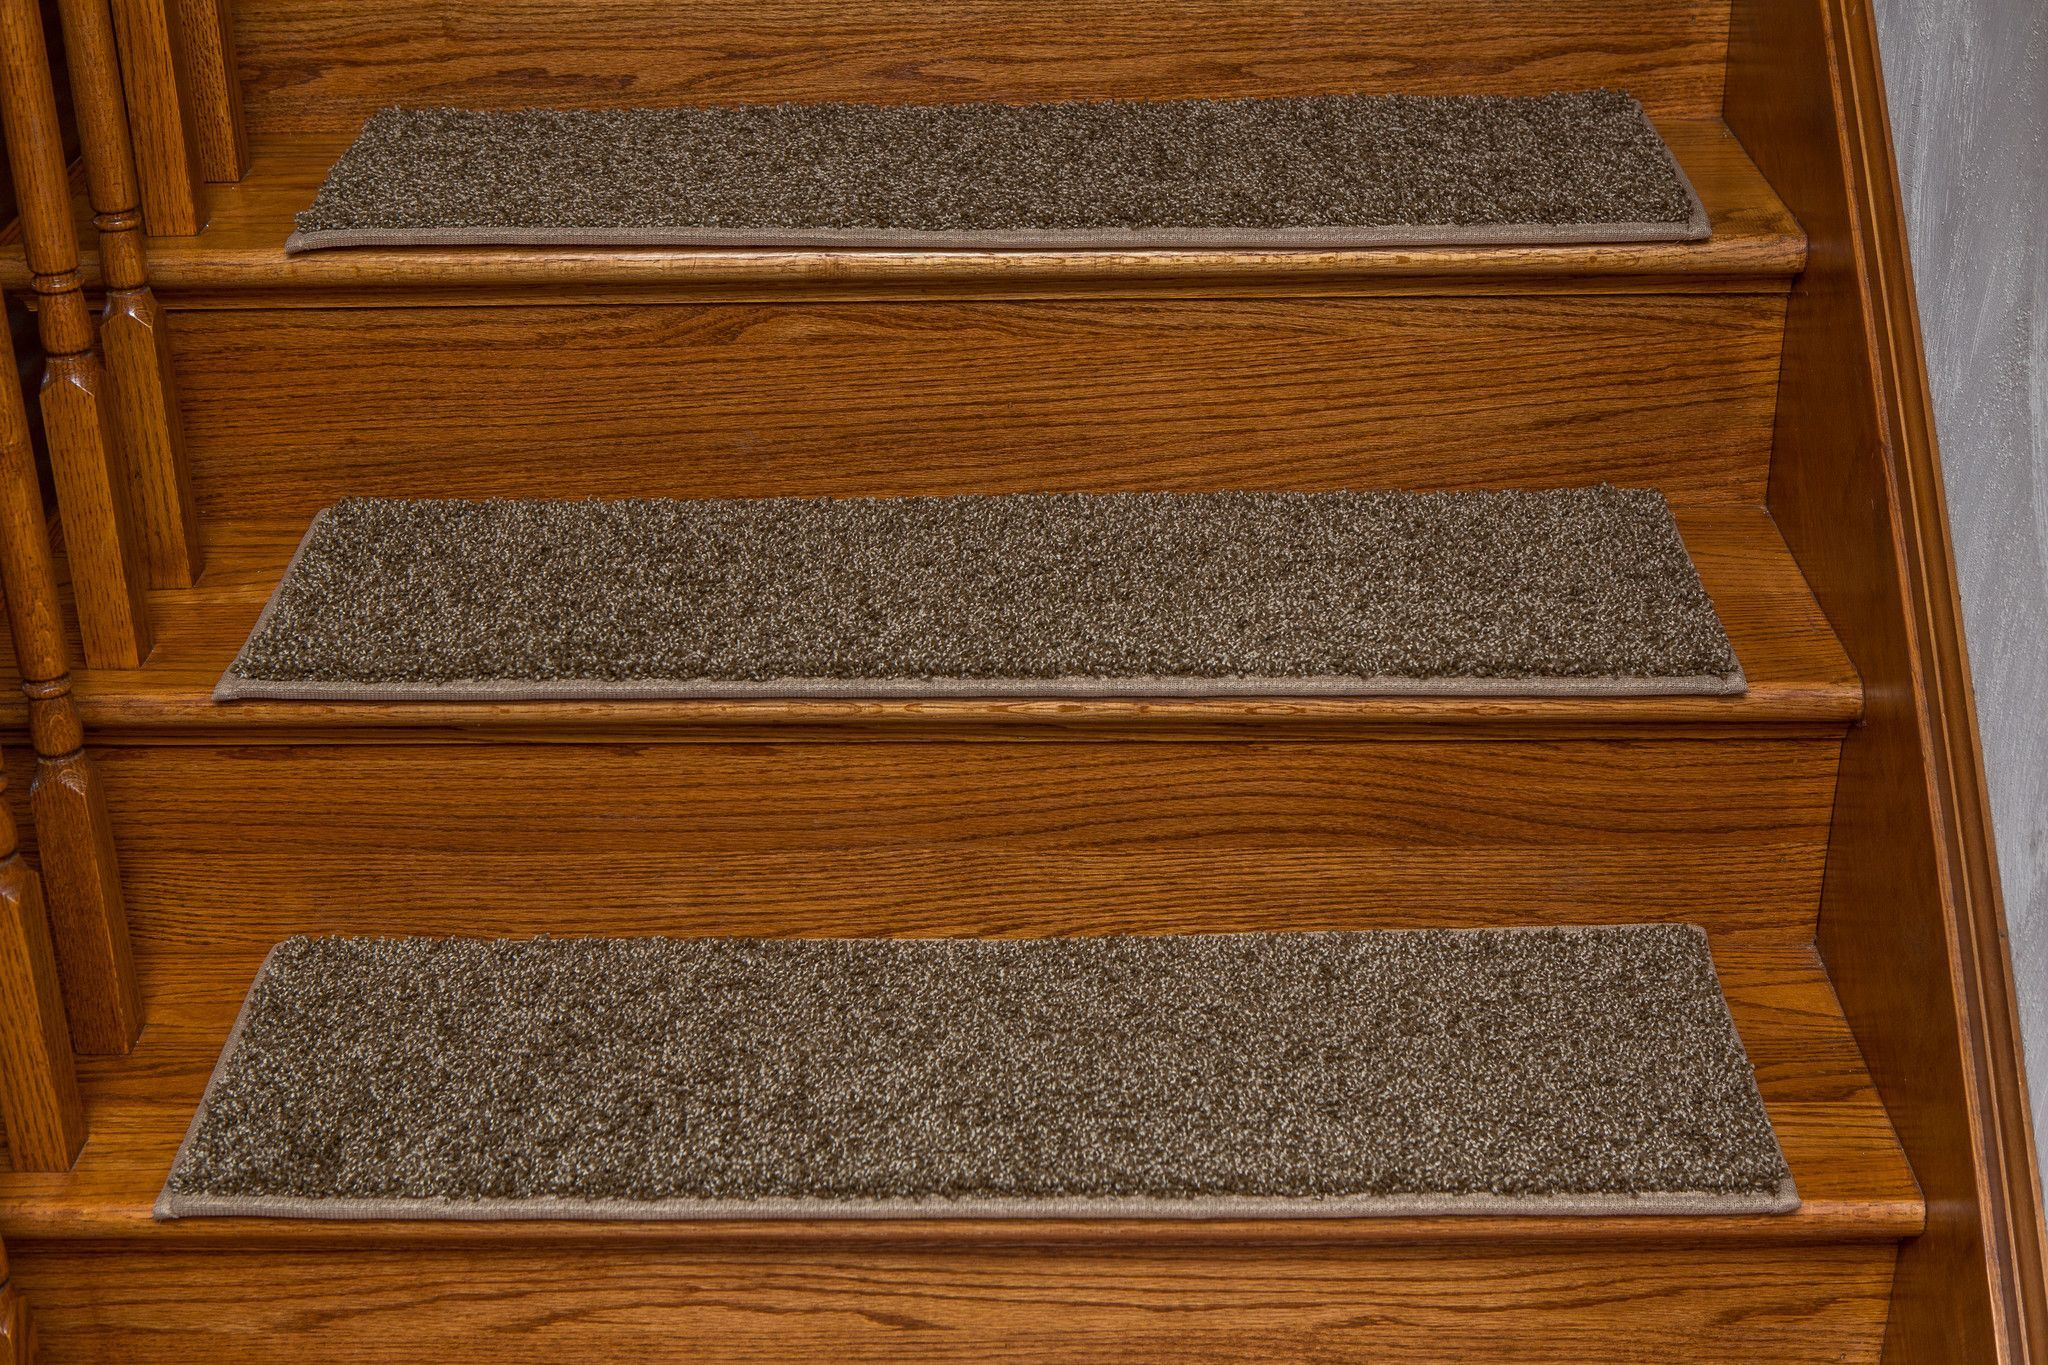 Best Windsor Adhesive Flat Carpet Stair Tread With Padding 400 x 300